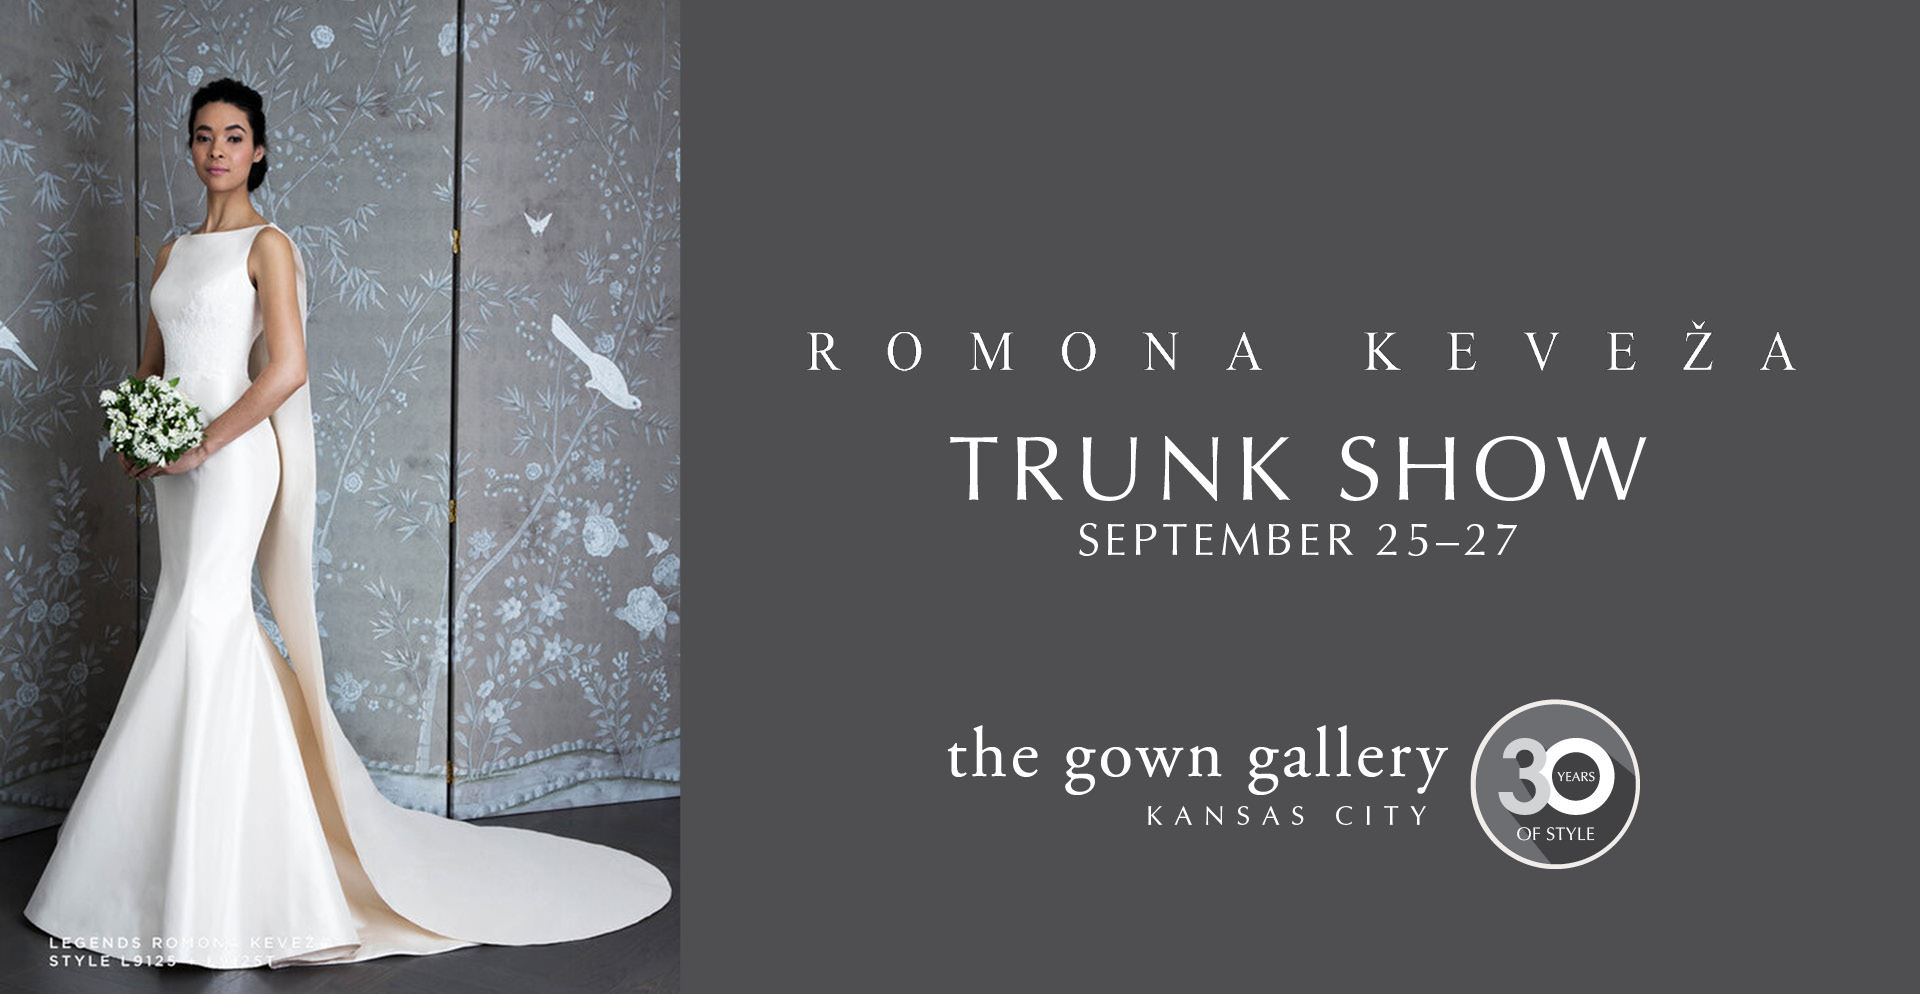 Romona Keveza Trunk Show September 25-27. Desktop Image